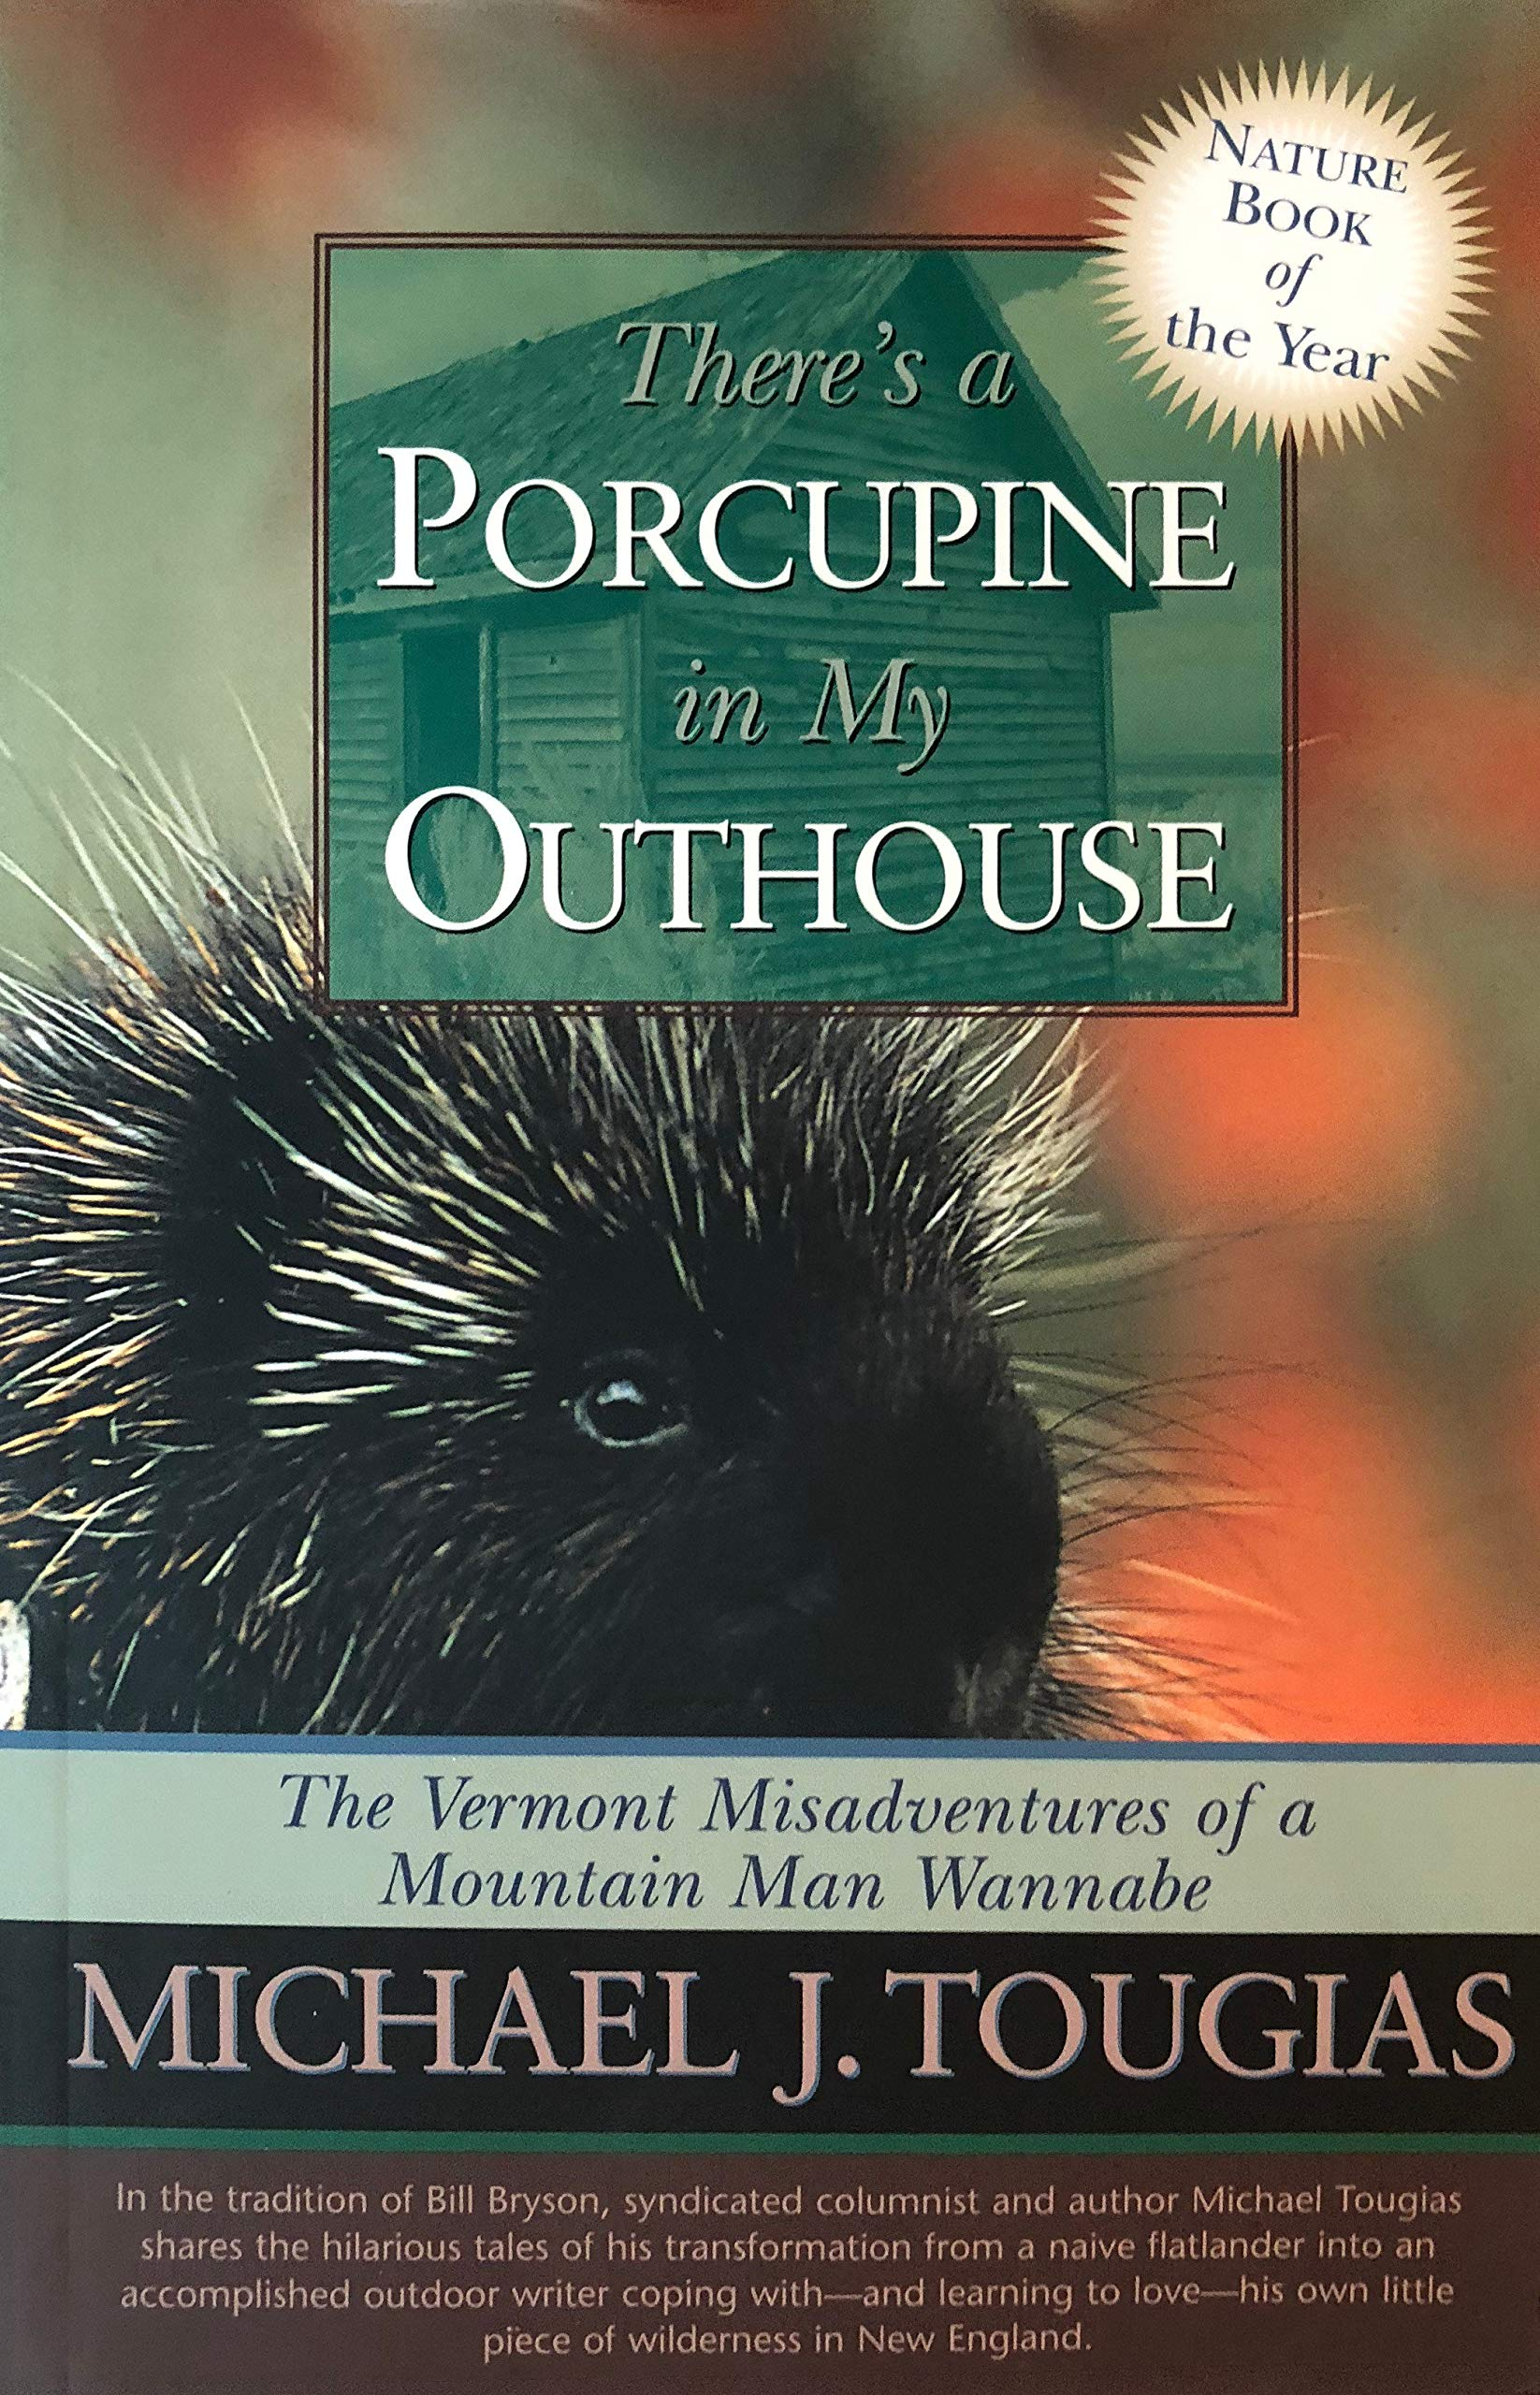 Business Ethics Essays Theres A Porcupine In My Outhouse The Vermont Misadventures Of A Mountain  Man Wannabe Michael Tougias  Amazoncom Books Genetically Modified Food Essay Thesis also Essay Of Science Theres A Porcupine In My Outhouse The Vermont Misadventures Of A  Business Ethics Essays